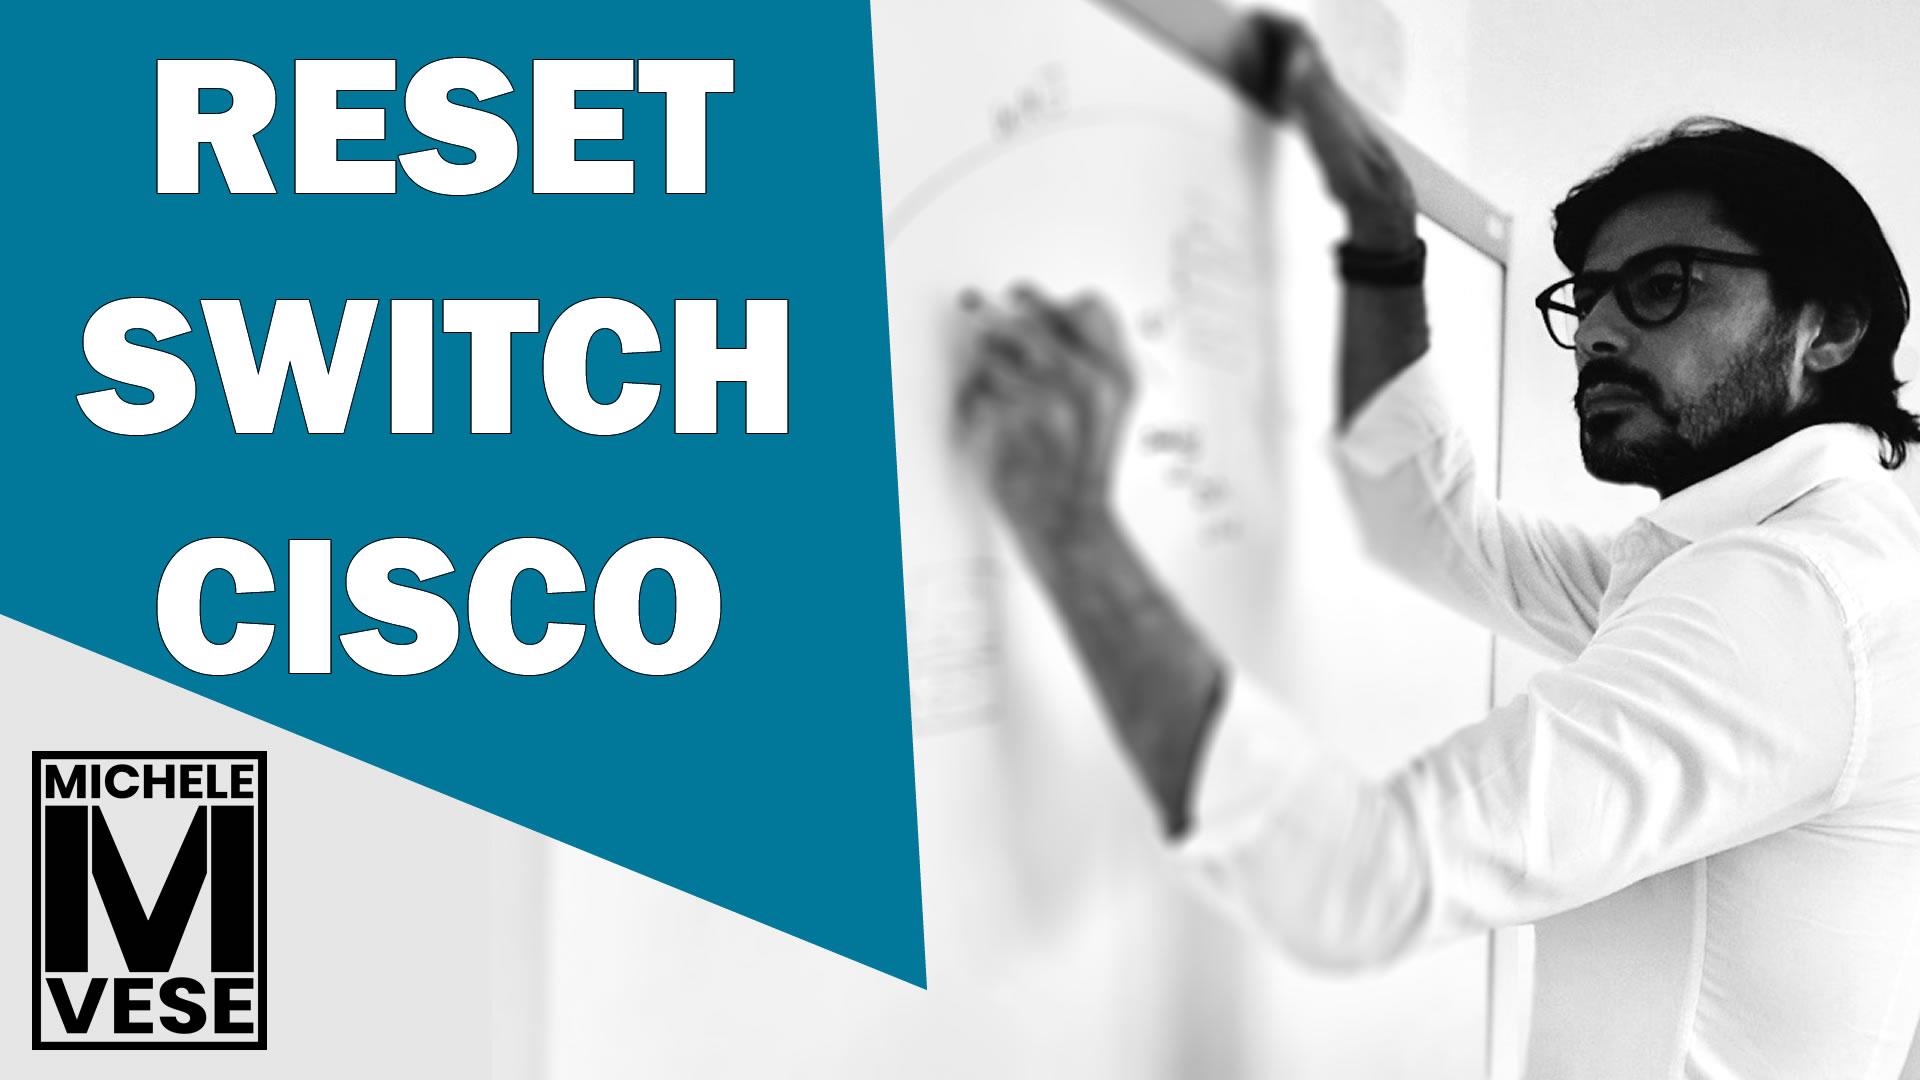 Reset Switch Cisco